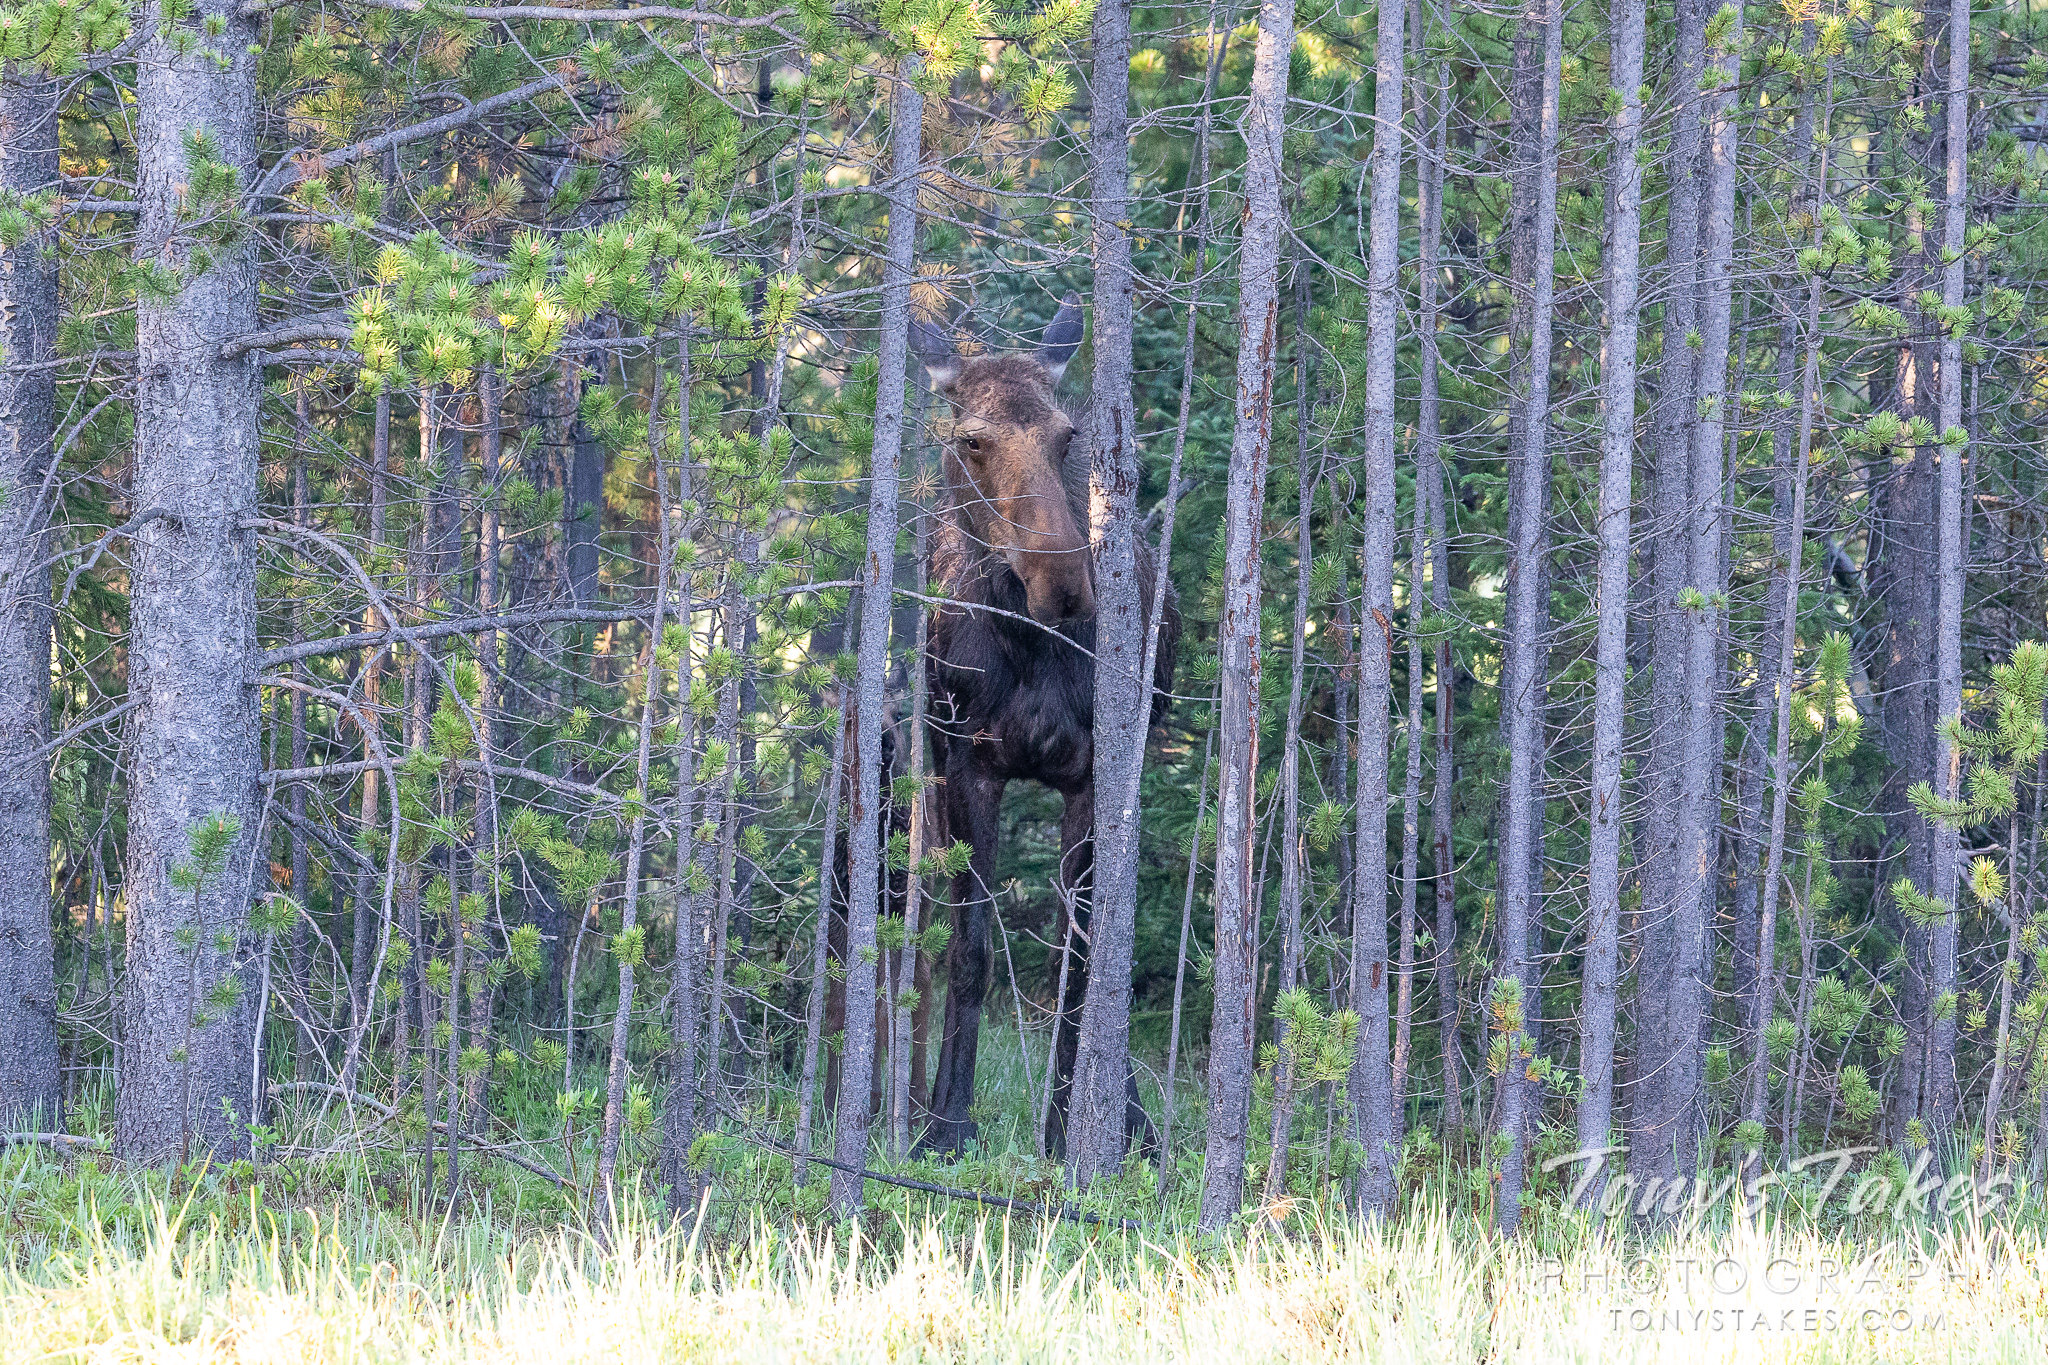 A moose cow and her calf hide in a stand of trees. (© Tony's Takes)